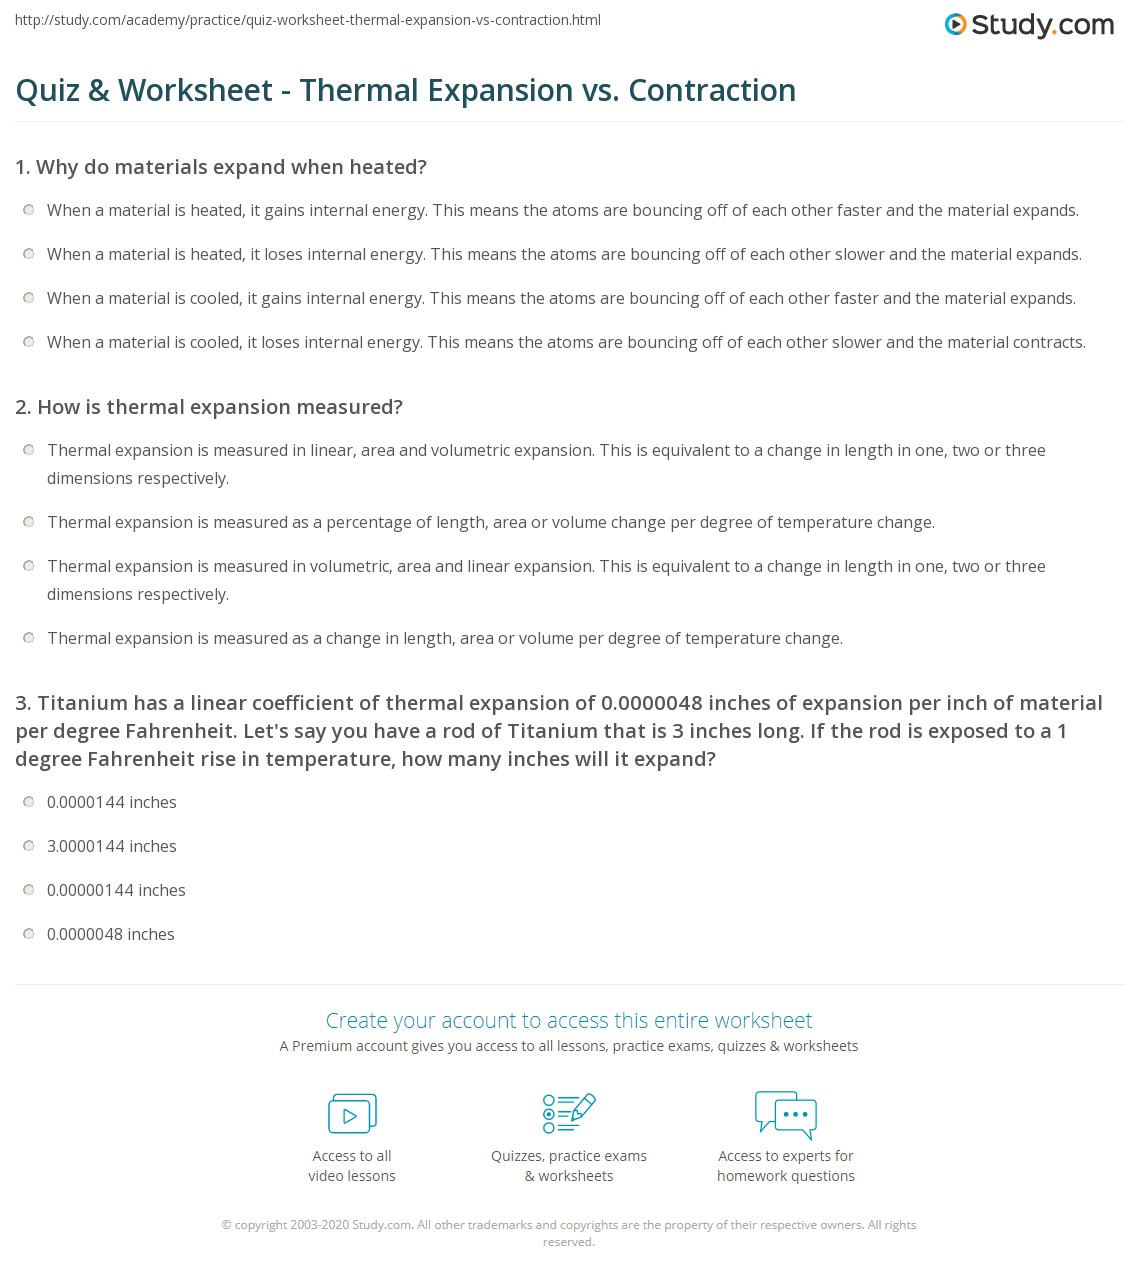 Quiz & Worksheet - Thermal Expansion vs. Contraction | Study.com